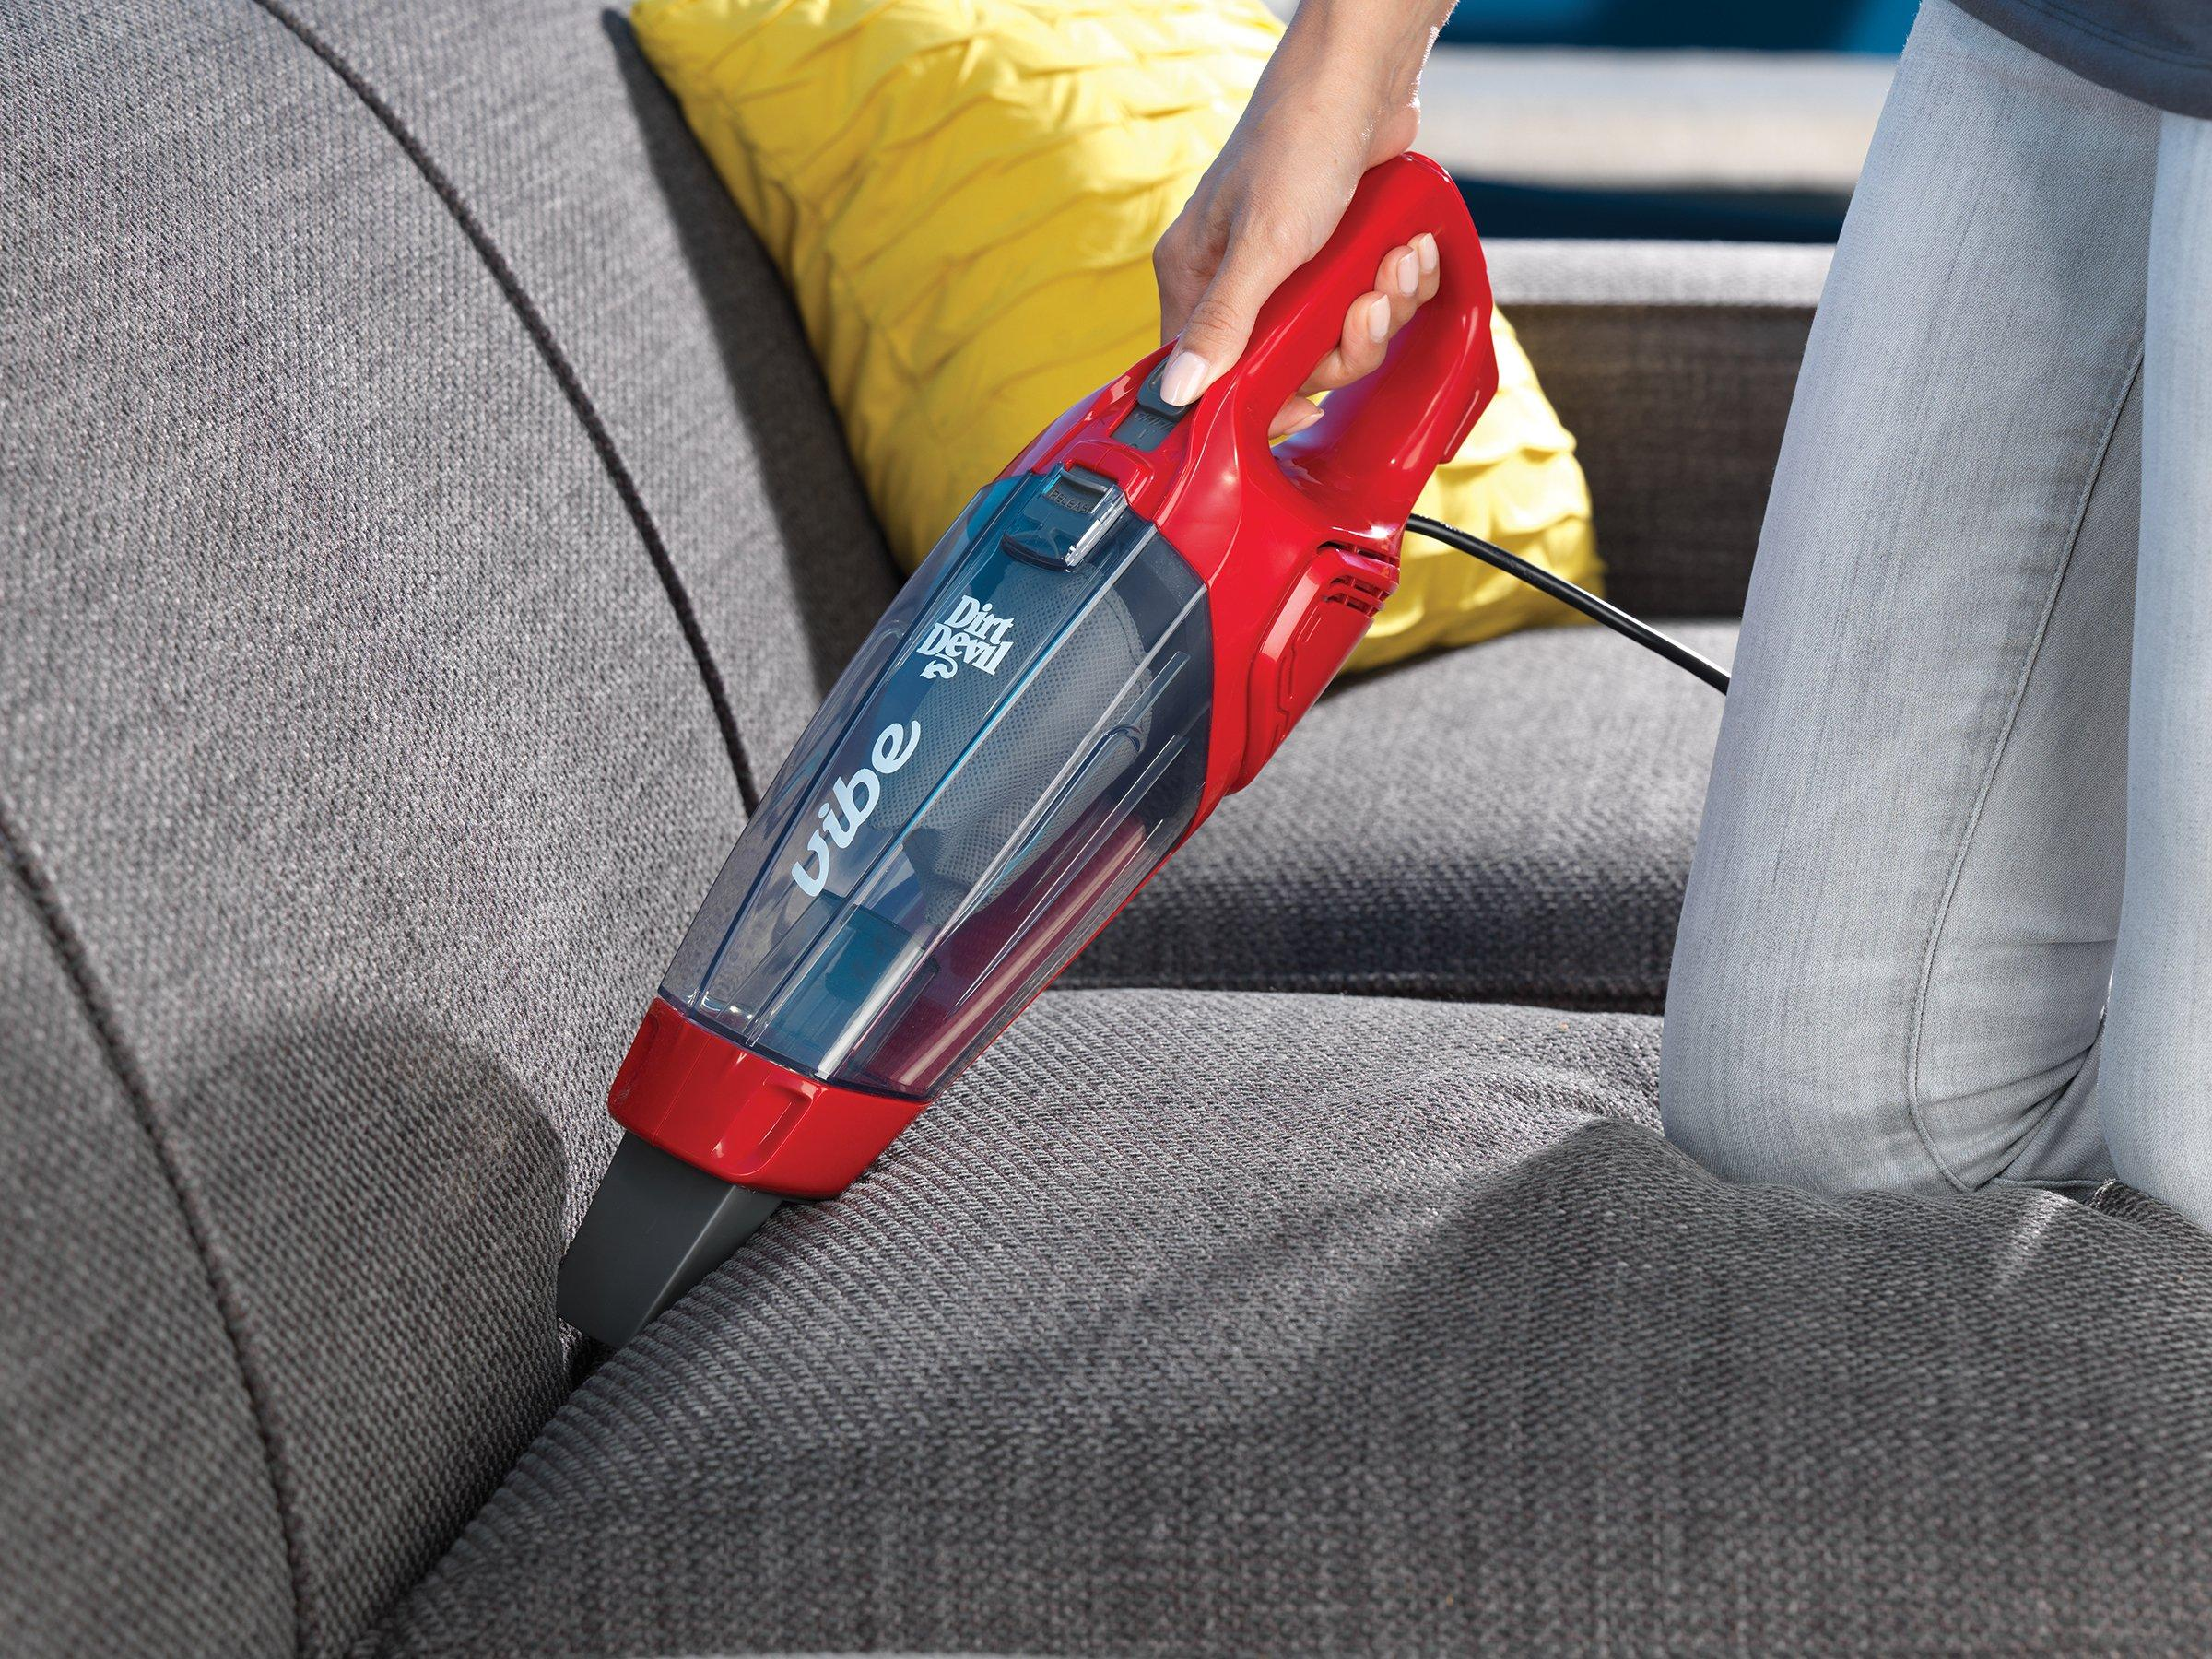 Vibe 3-in-1 Corded Bagless Stick Vacuum7